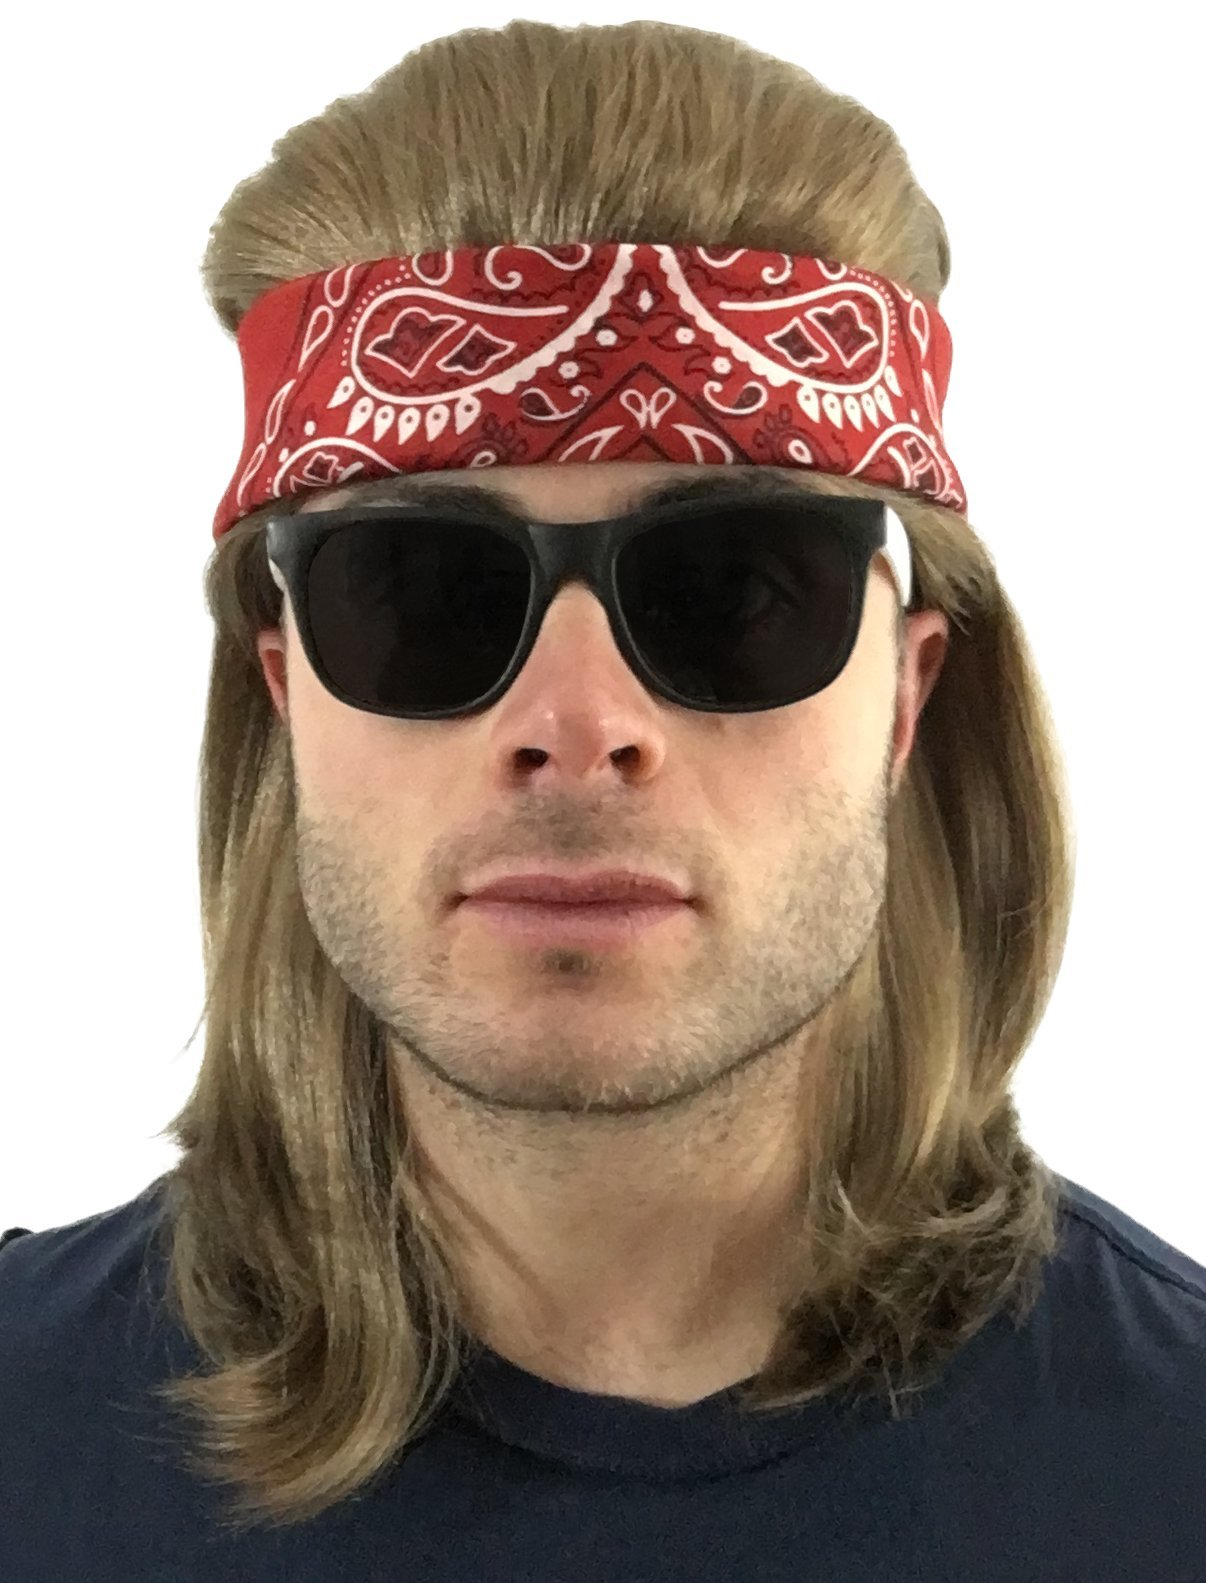 4 pc. Brown Mullet Wig + Red Bandana + 2-Tone Sunglasses: Hillbilly Red Neck Long Funny Party Halloween Costume 80s Wig, Women's Men's 80's Mullet Wigs for Men Women Boys Girls Kids Adults (Red/2T)